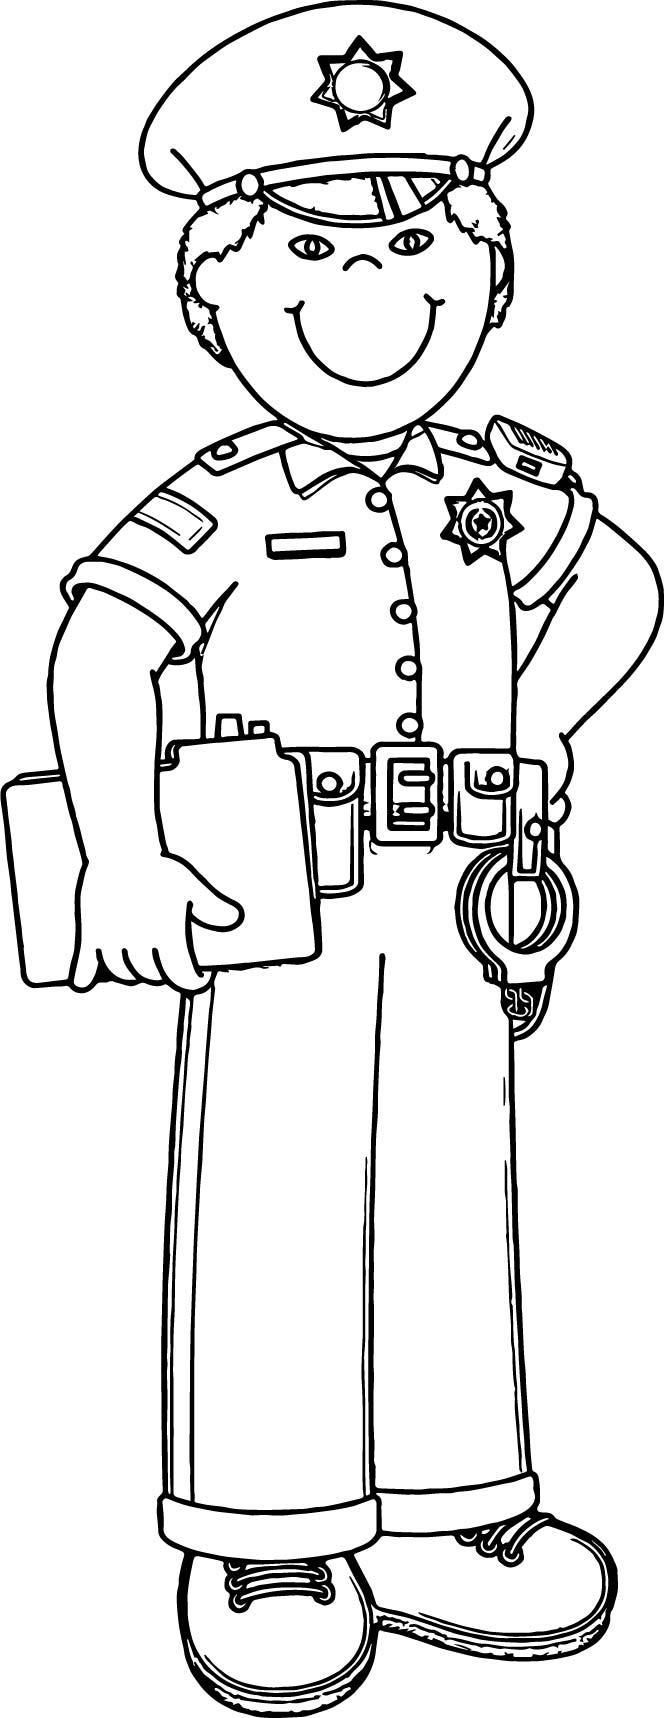 coloring pages of police officer - photo#30